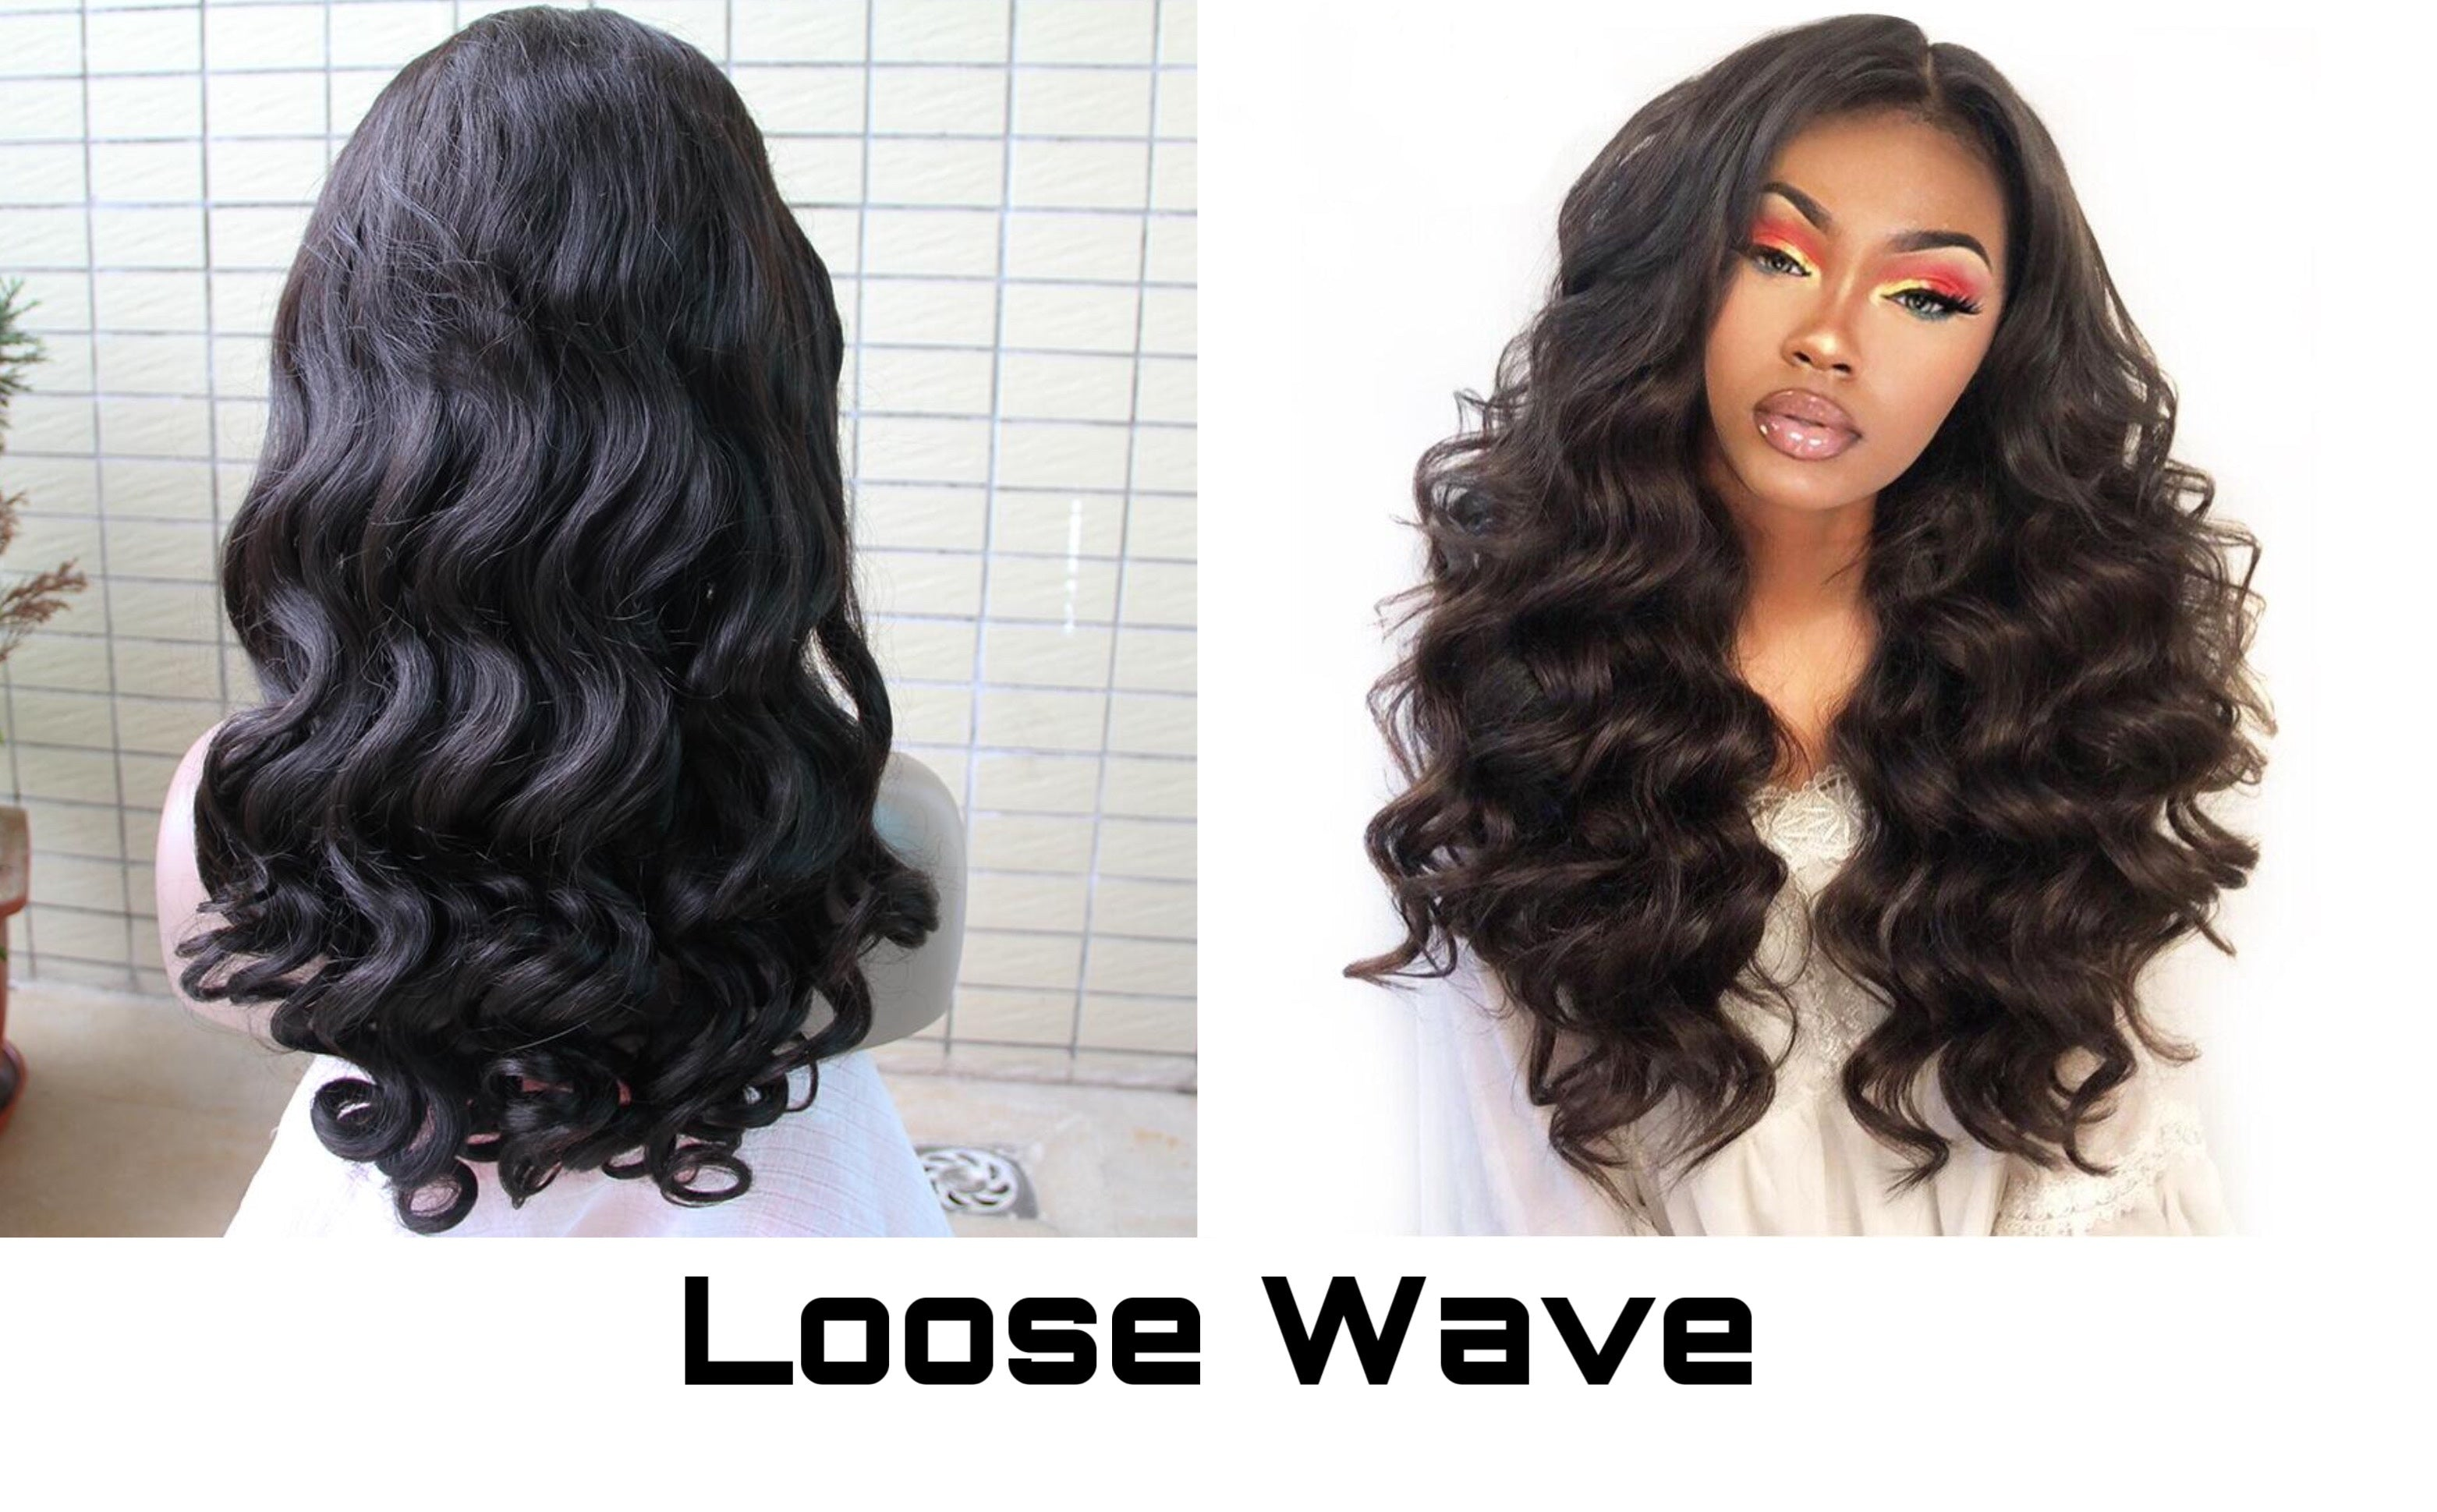 UEENLY LOOSE WAVE WIG